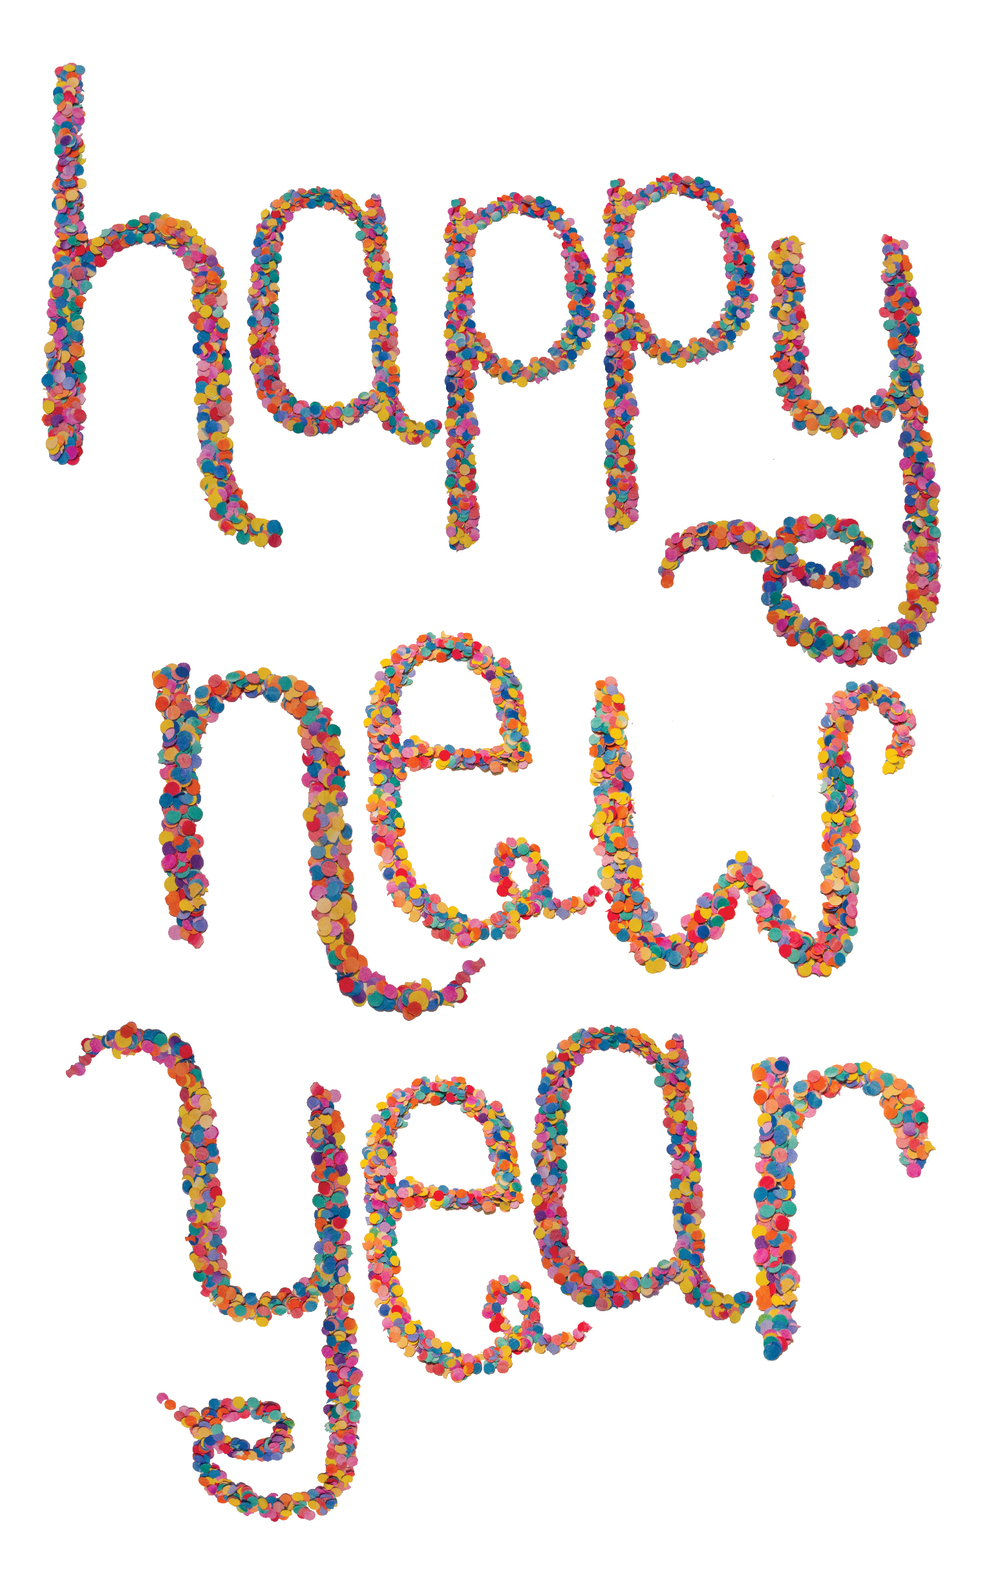 Happy New Year Type by Bryna Shields